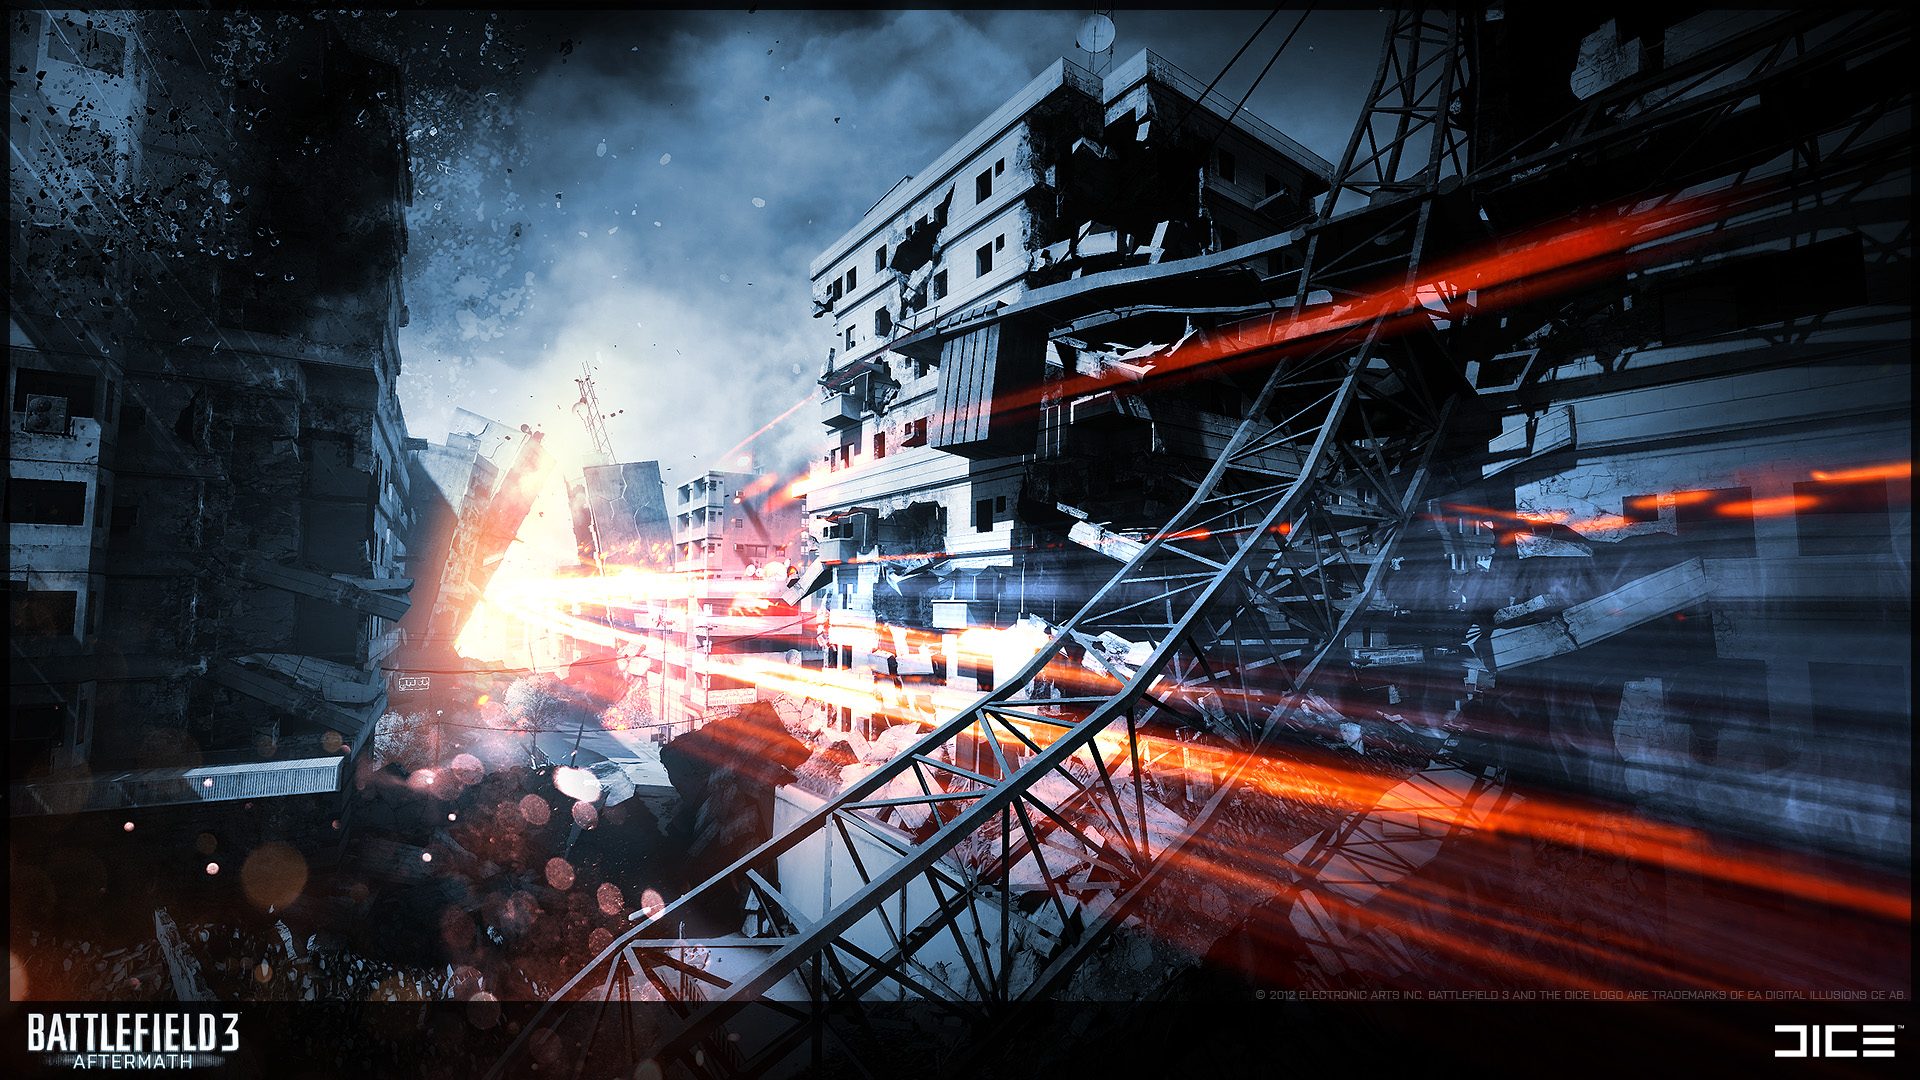 Battlefield 3 wallpapers pictures images battlefield 3 full hd wallpaper voltagebd Images